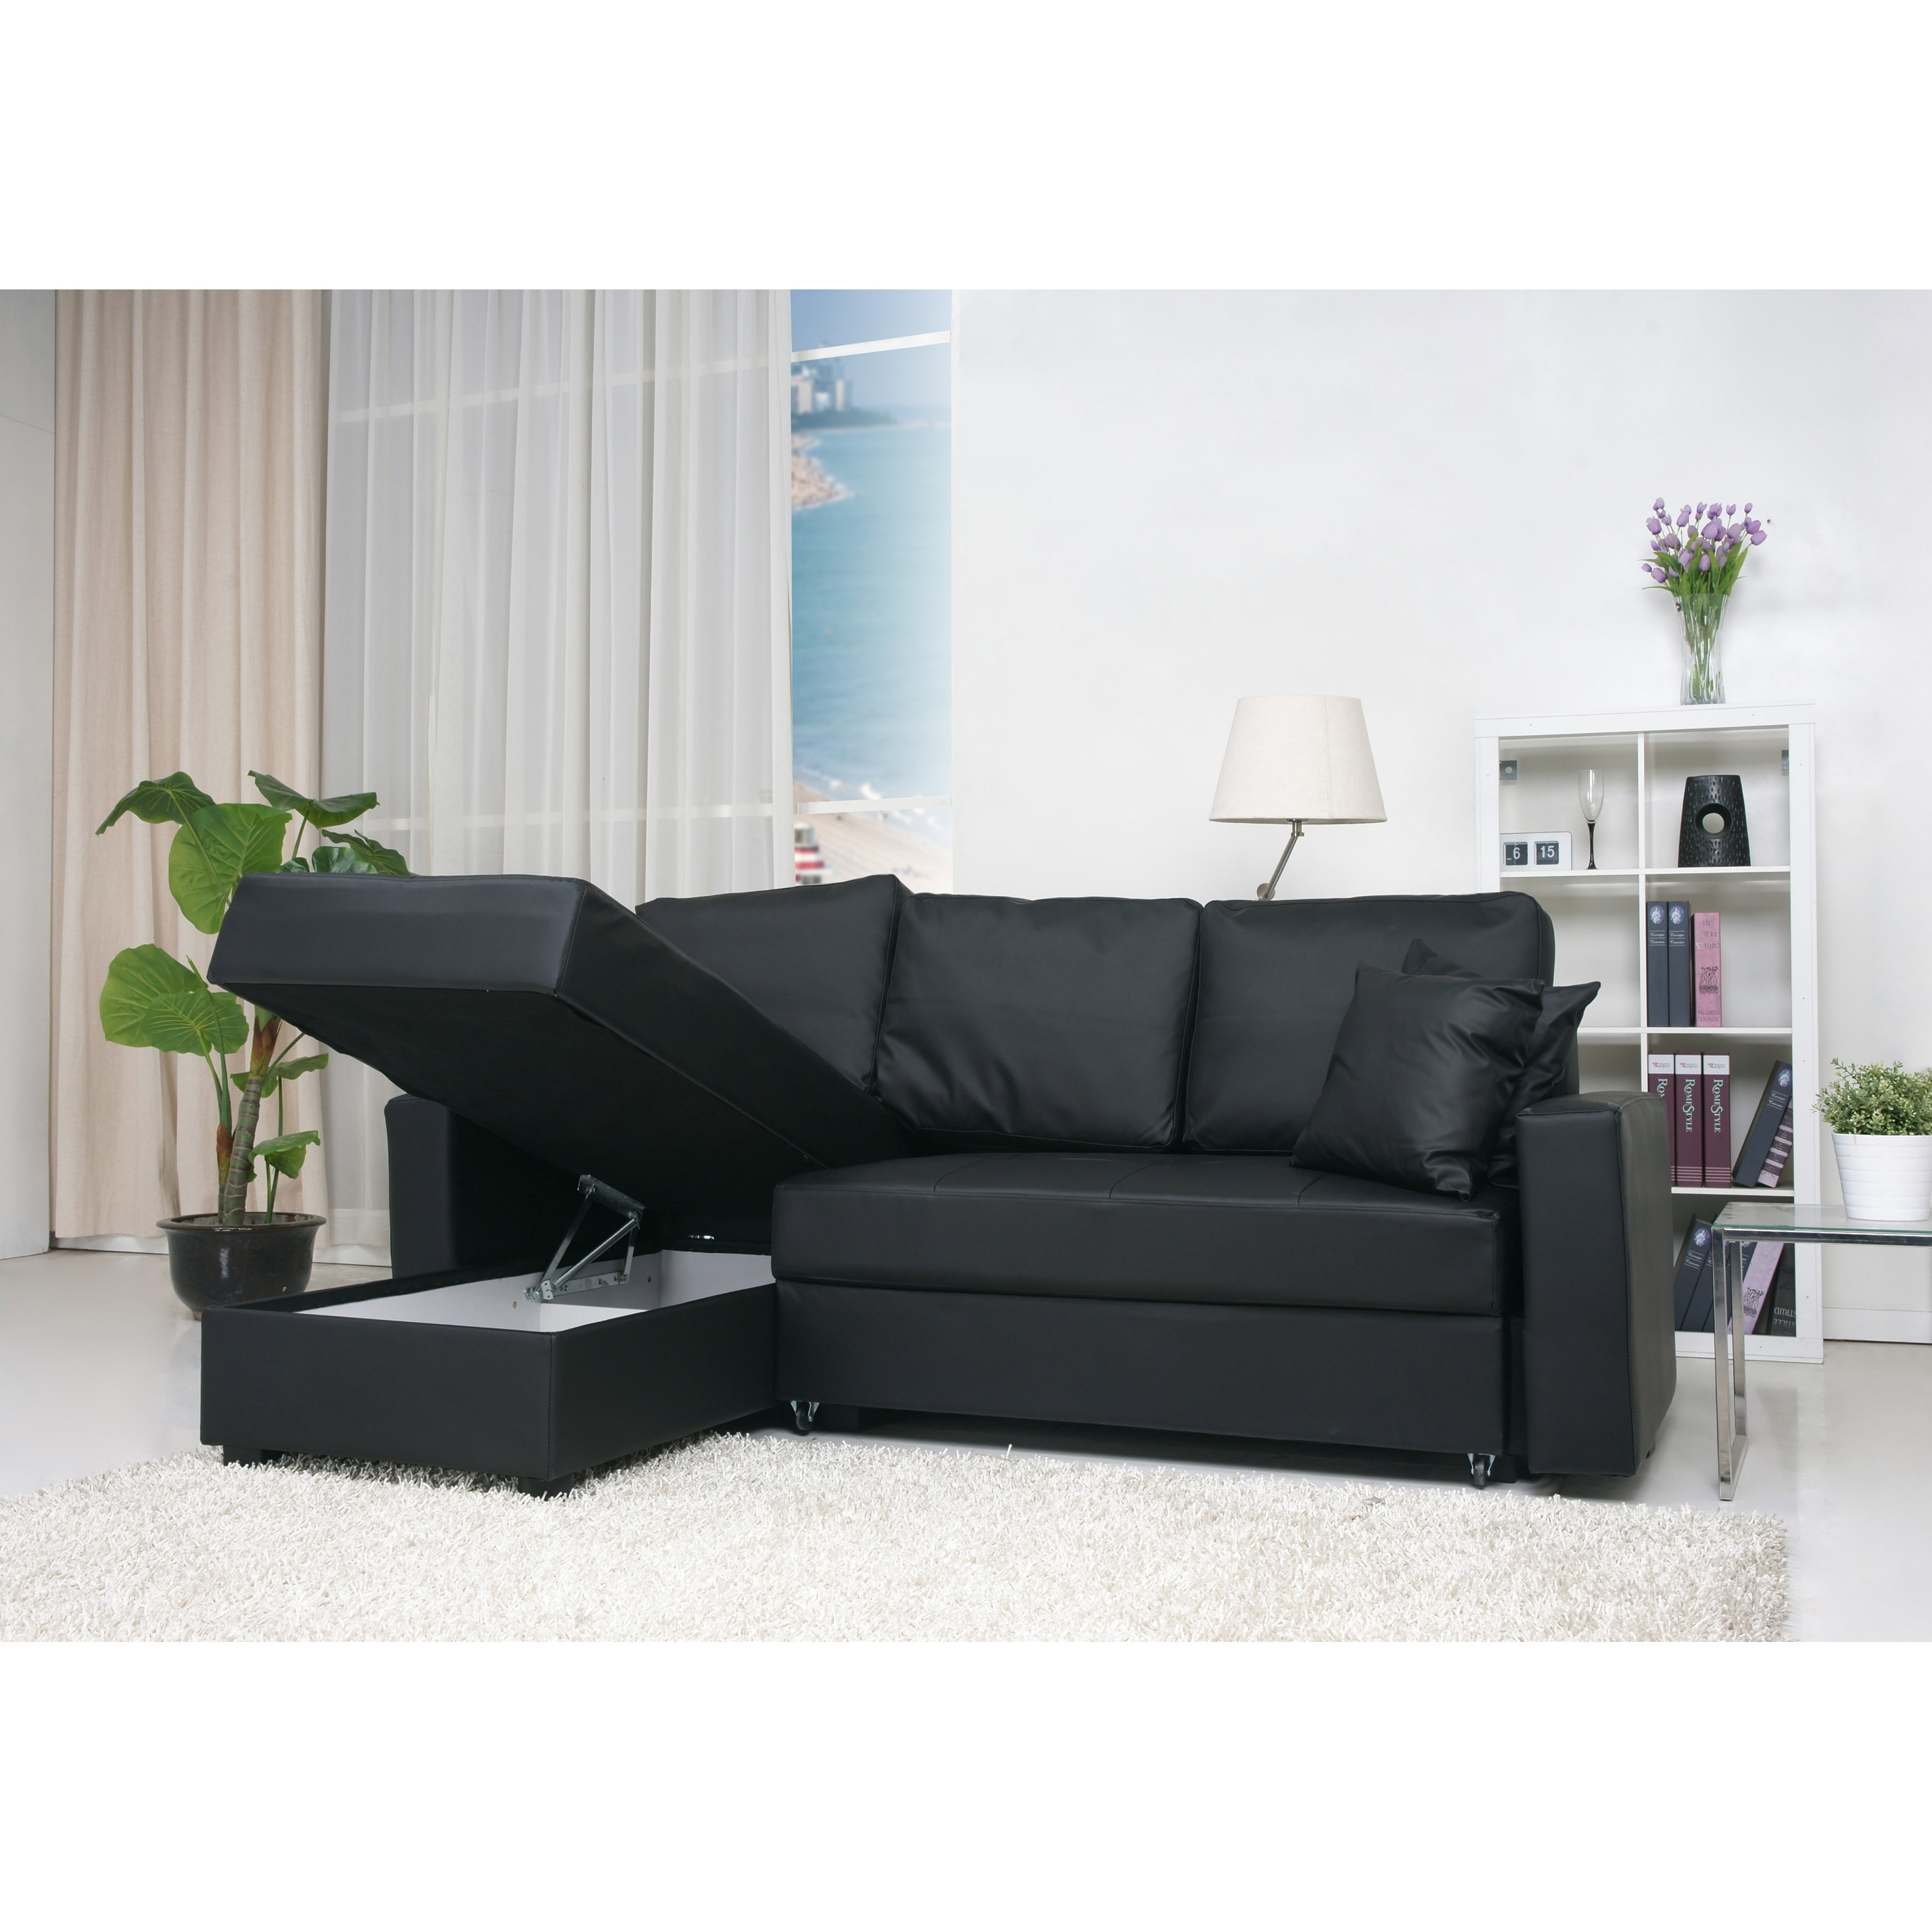 Furniture & Sofa: Compact Sectional Sofas | Small Spaces Throughout Sectional Sofas At Ebay (View 3 of 10)